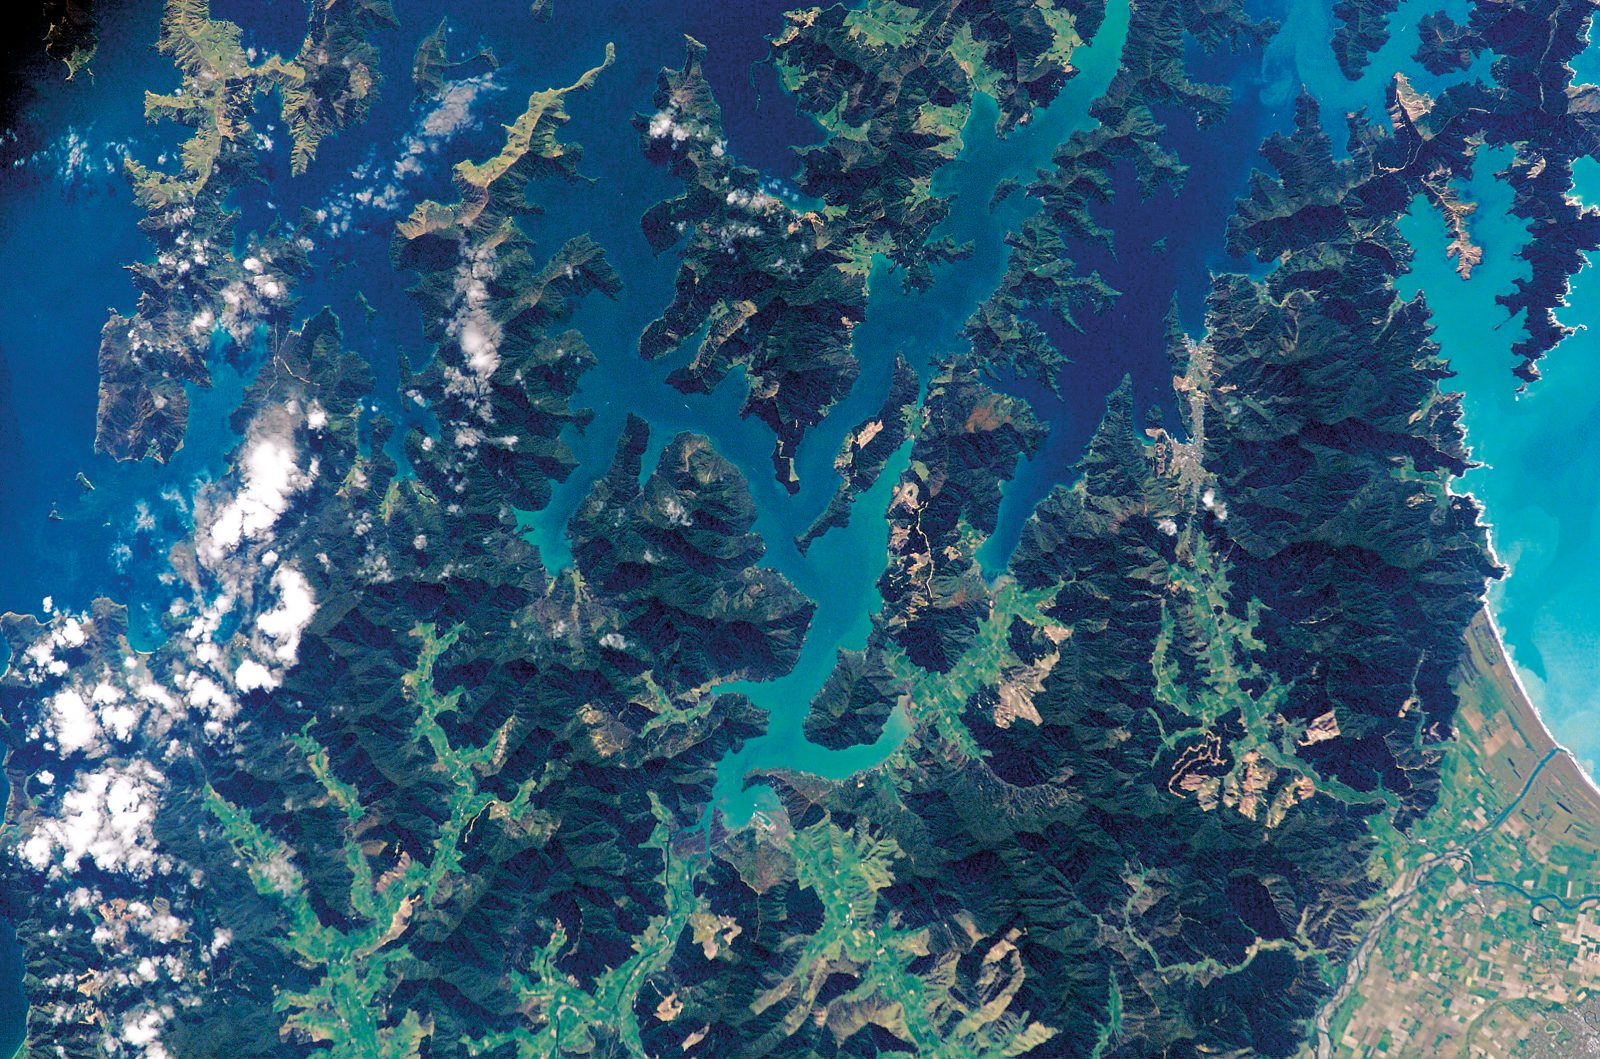 The forested ridges of the inner Marlborough Sounds splay like dark fingers against both the sea and verdant valley floors ashore.